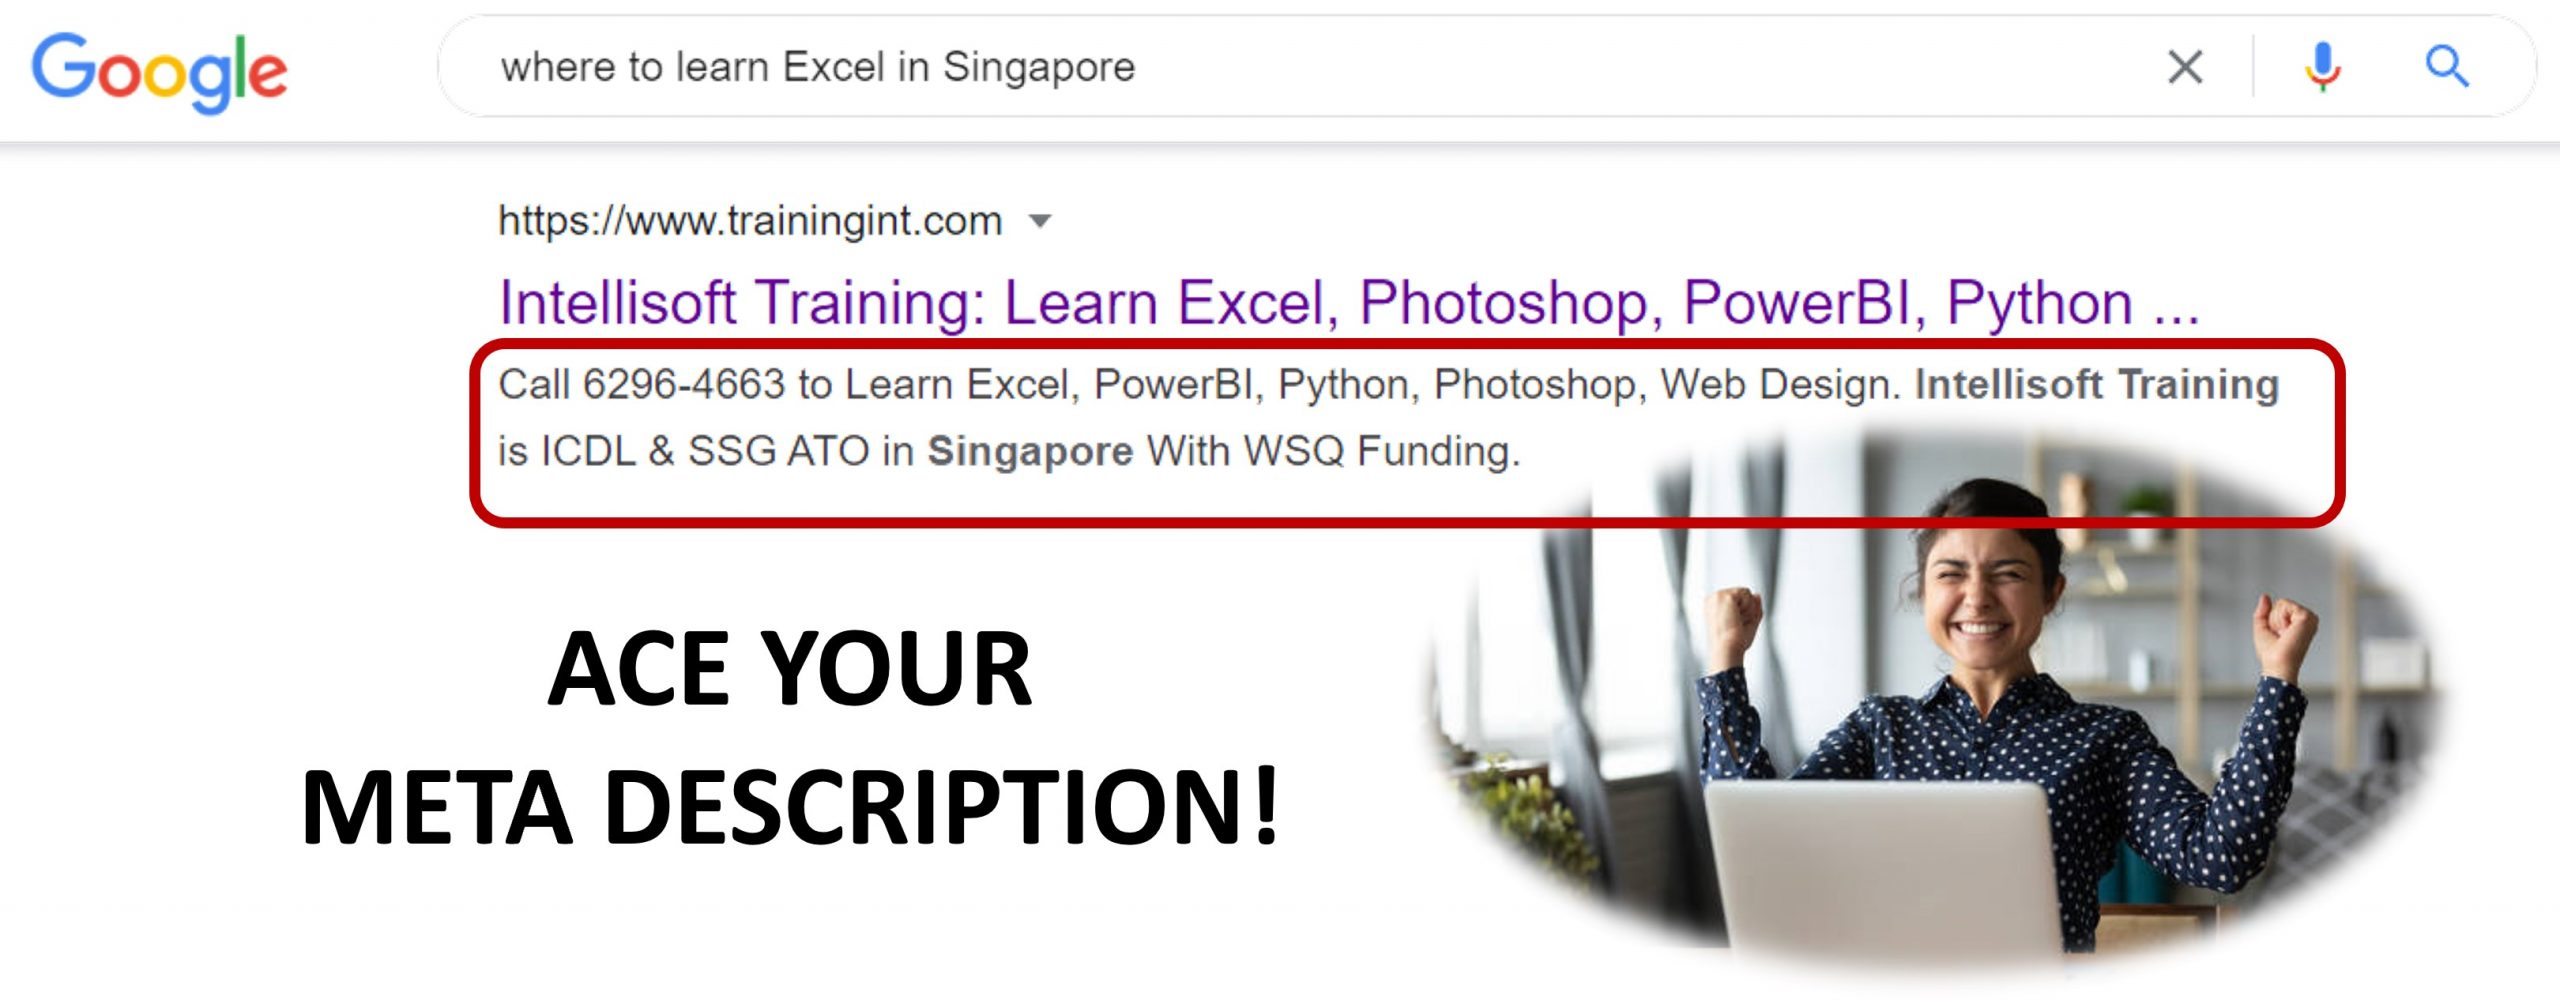 Learn What to Write in Meta Description for Better SEO at Intellisoft Singapore